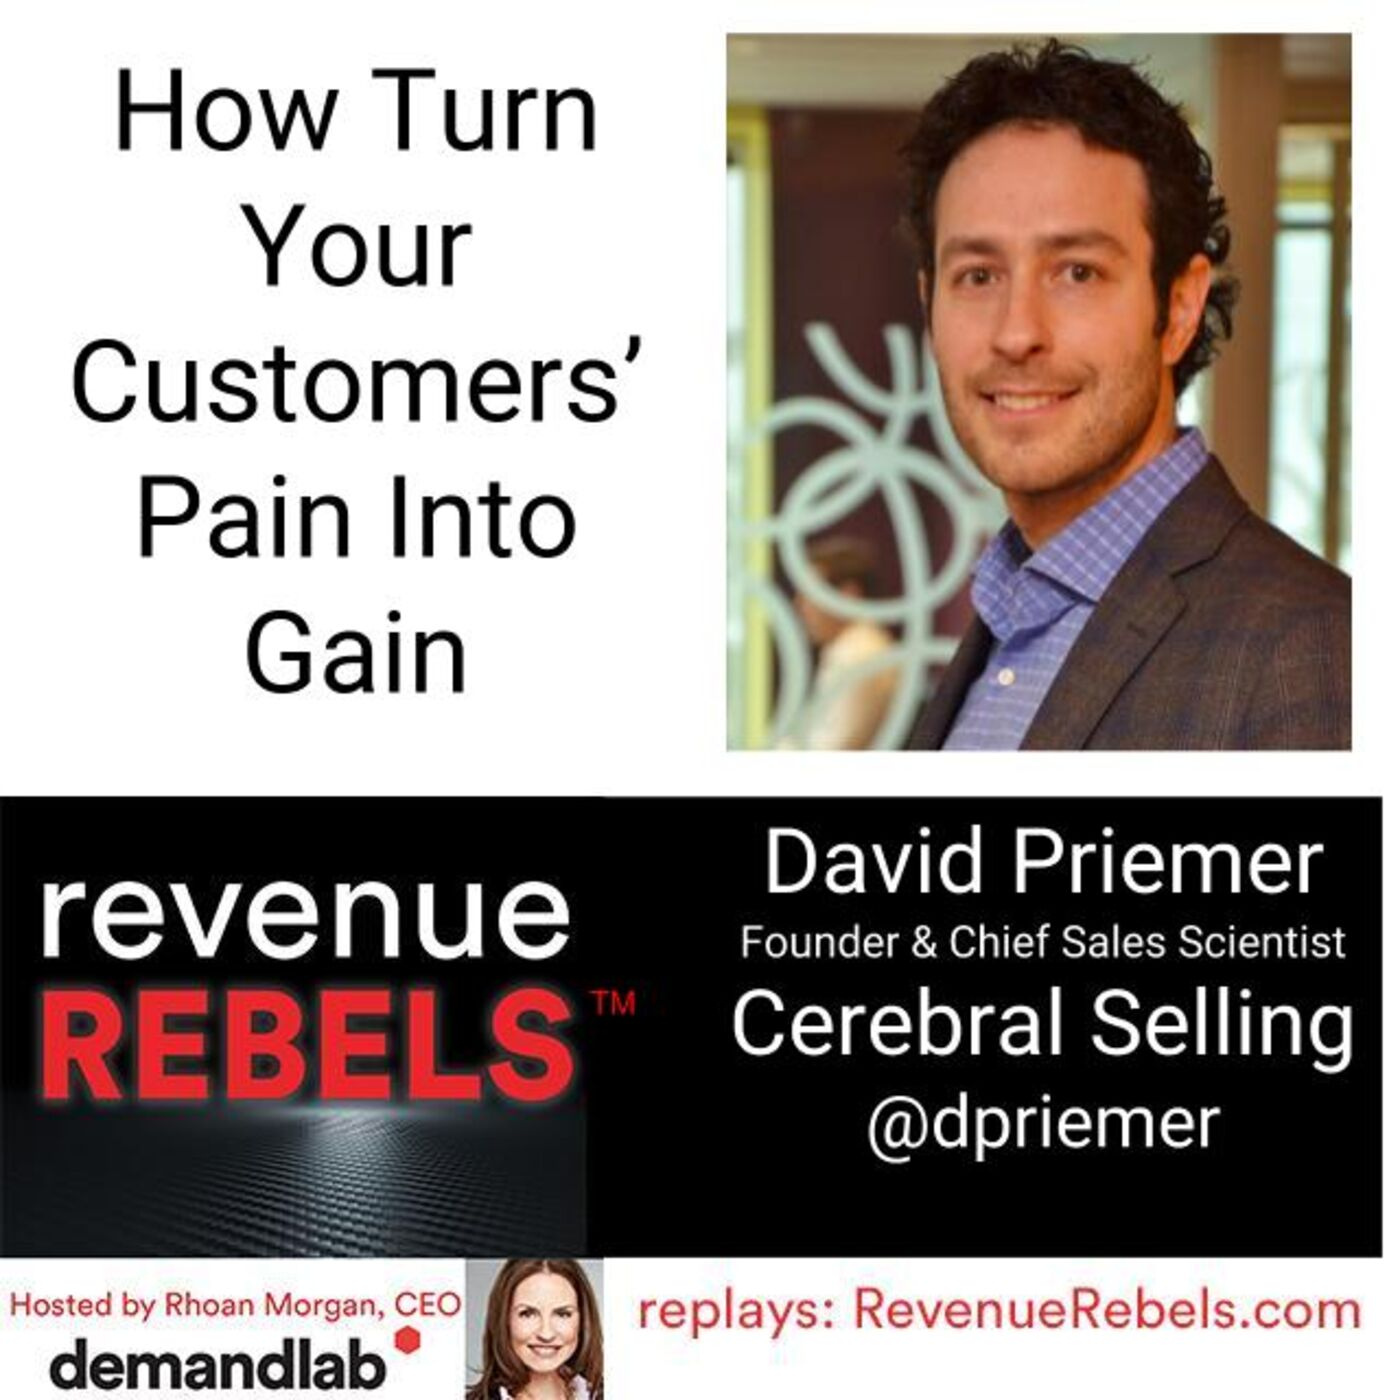 How To Turn Your Customer's Pain Into Gain